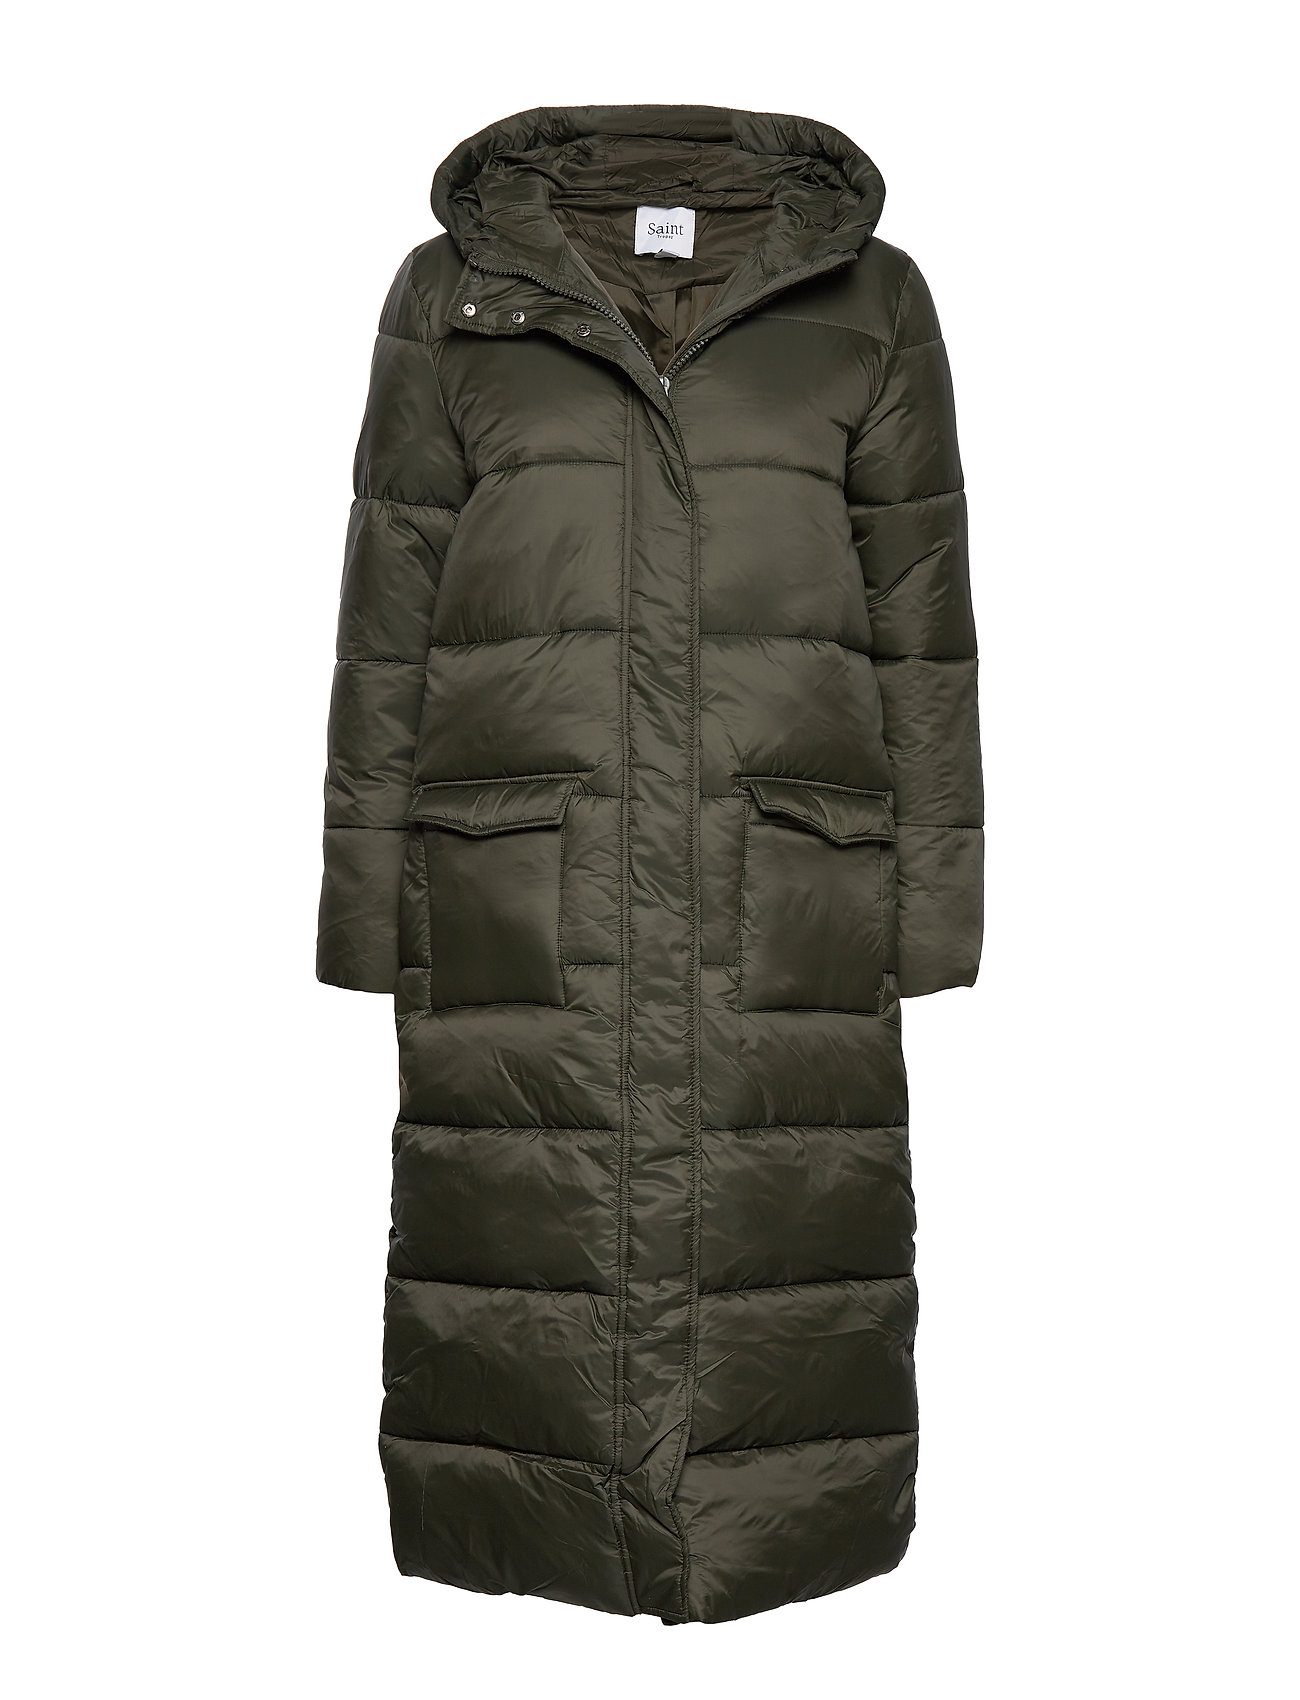 Saint Tropez R7022, LONG PADDED JACKET WITH HOOD - CACTUS